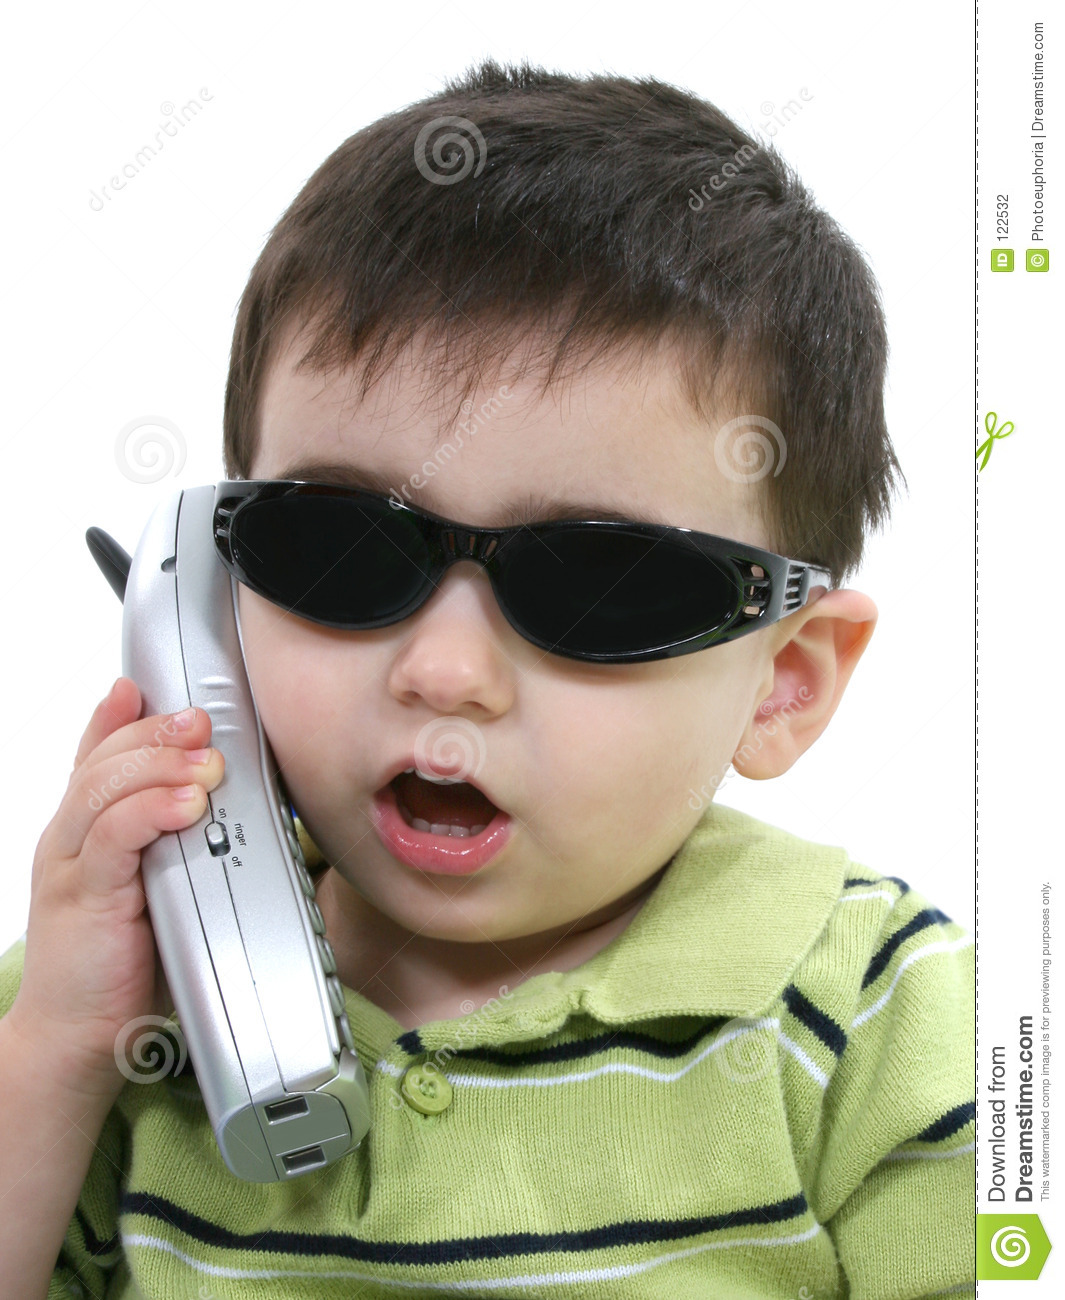 Boy In Sunglasses Speaking On The Phone Over White Stock  : boy sunglasses speaking phone over white 122532 from www.dreamstime.com size 1065 x 1300 jpeg 356kB